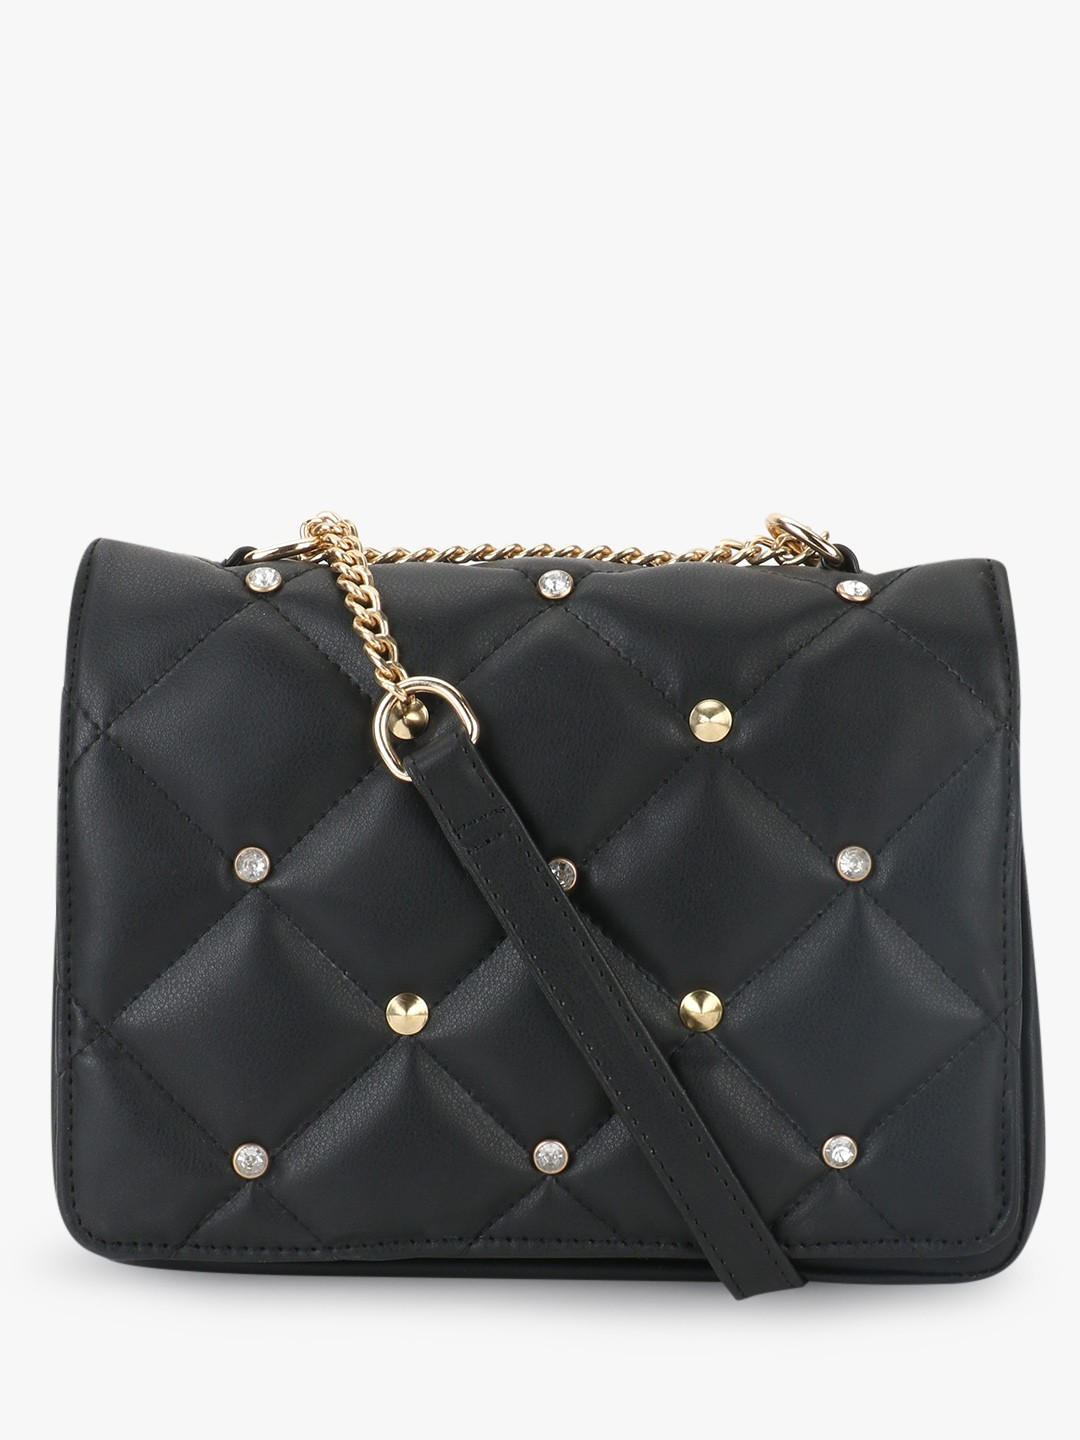 Paris Belle Black Slingbag With Cushion Detail And Studs 1